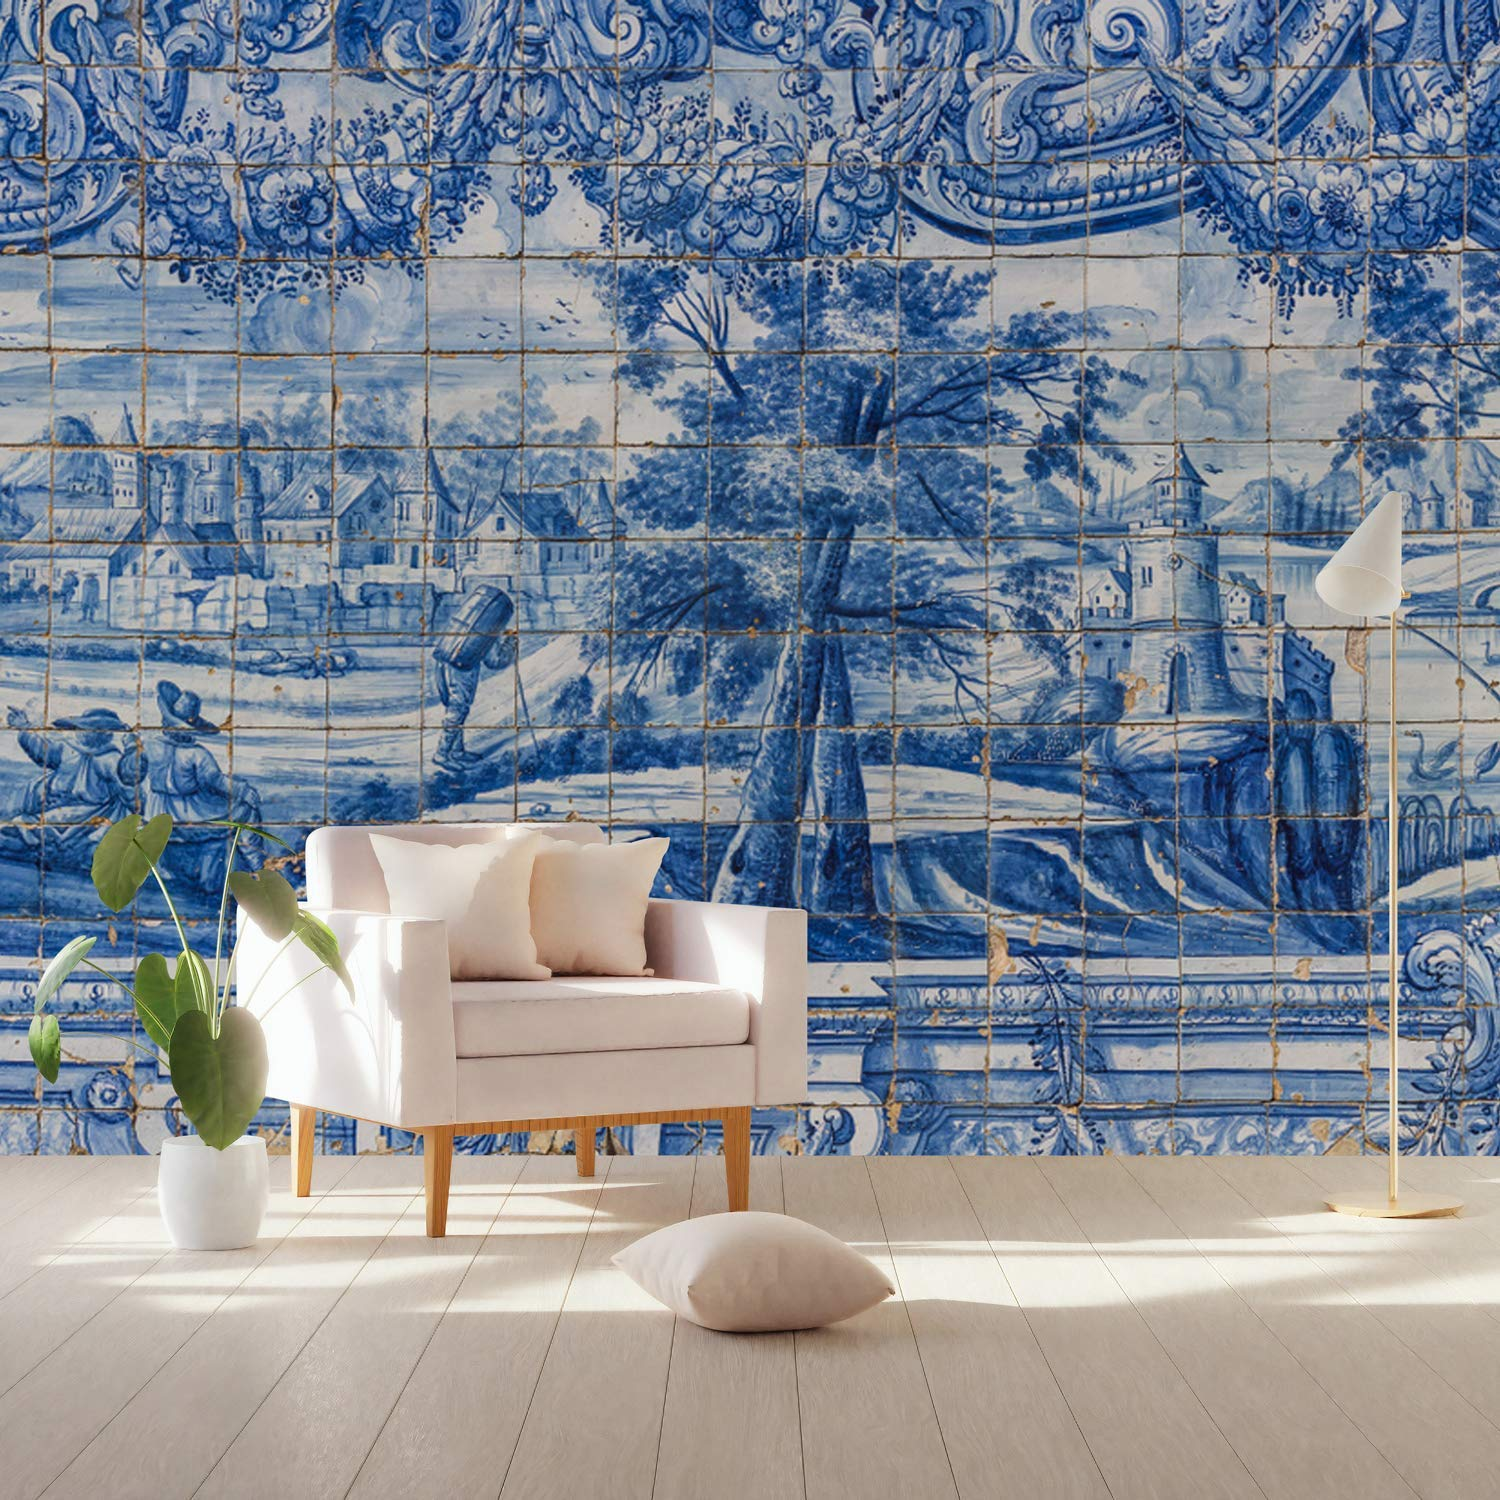 Amazon Com Murwall Chinoiserie Wallpaper Blue Tile Wall Mural